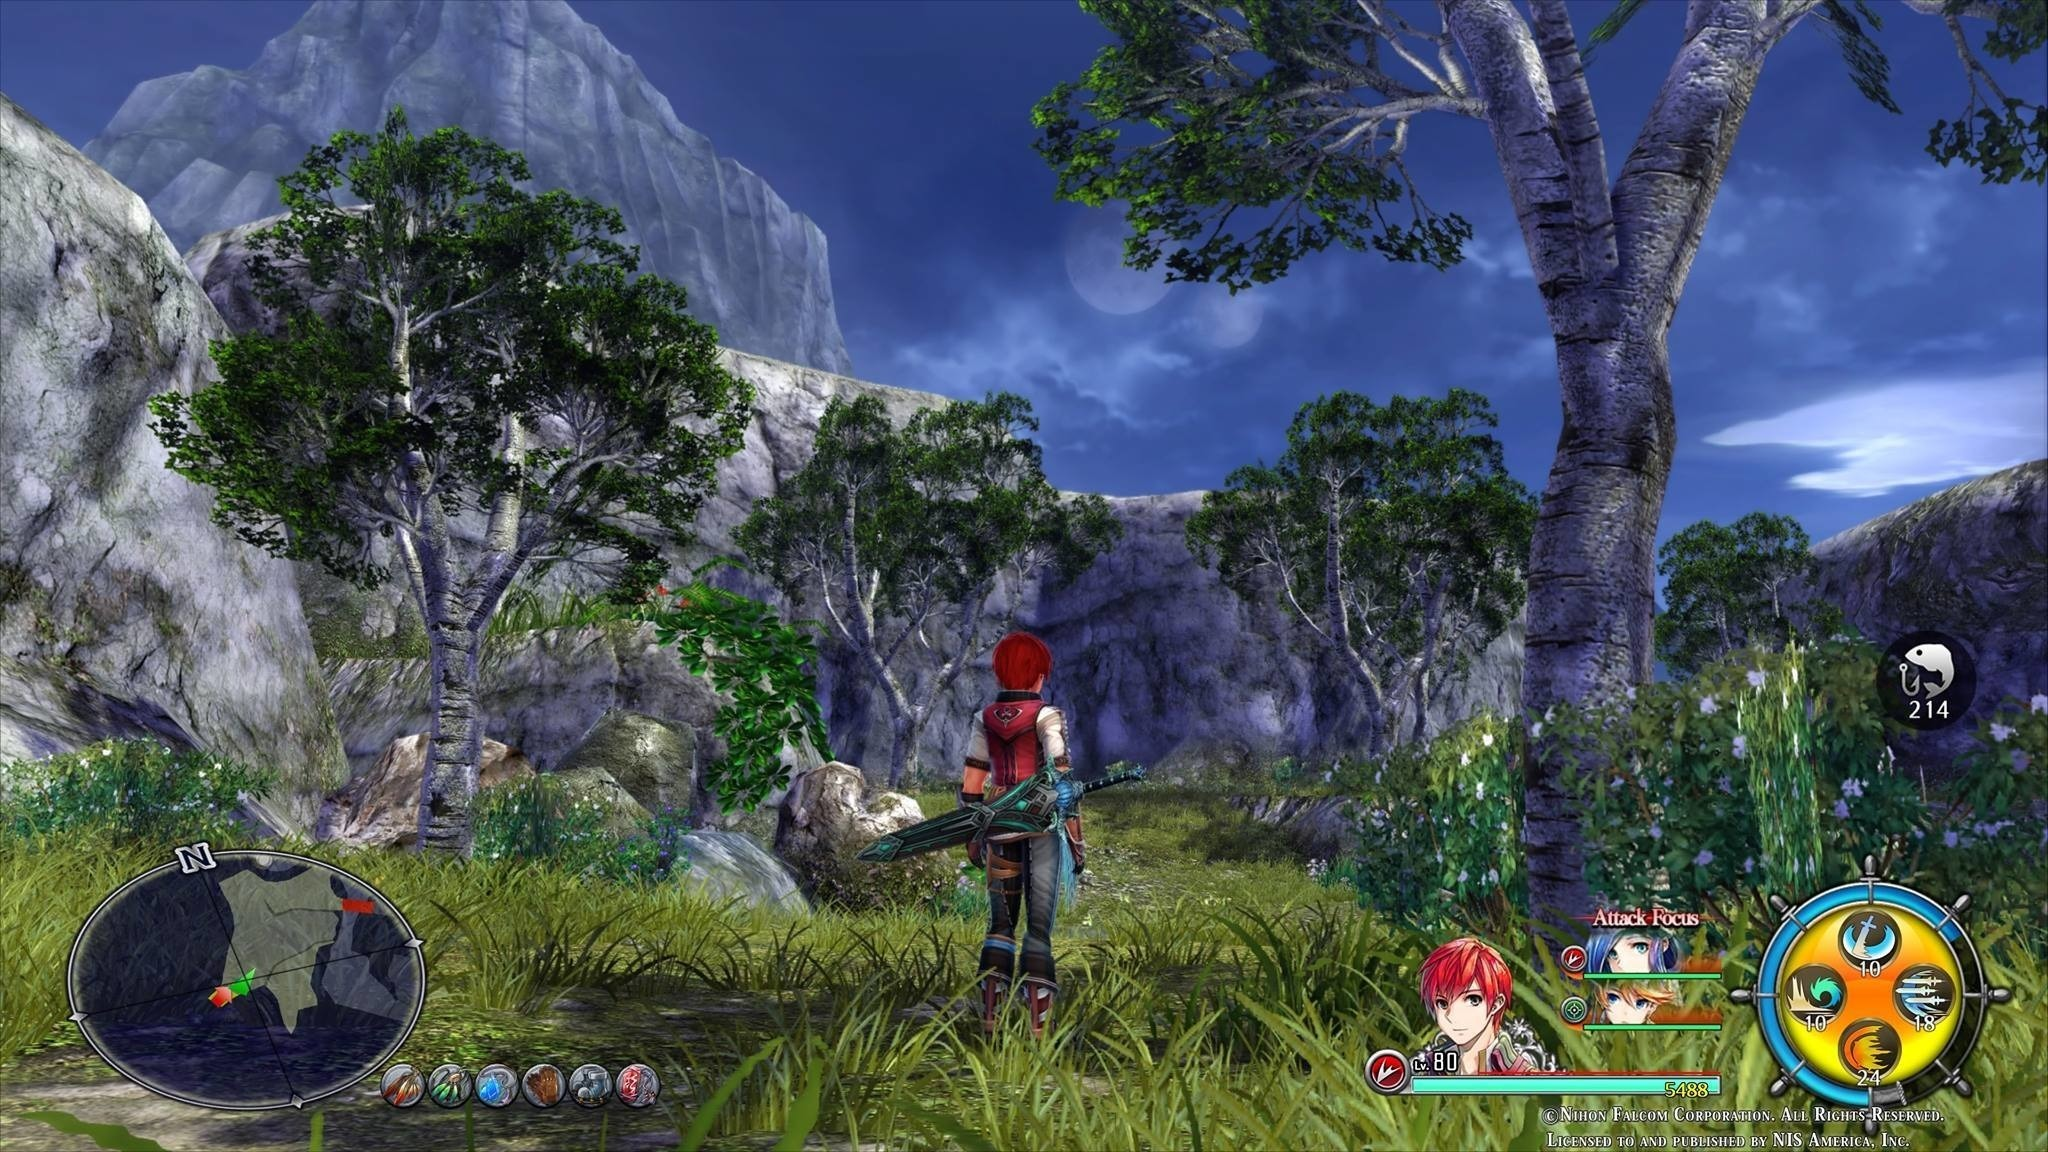 Ys VIII: Lacrimosa of Dana Review - Shipwrecked Yet Solid